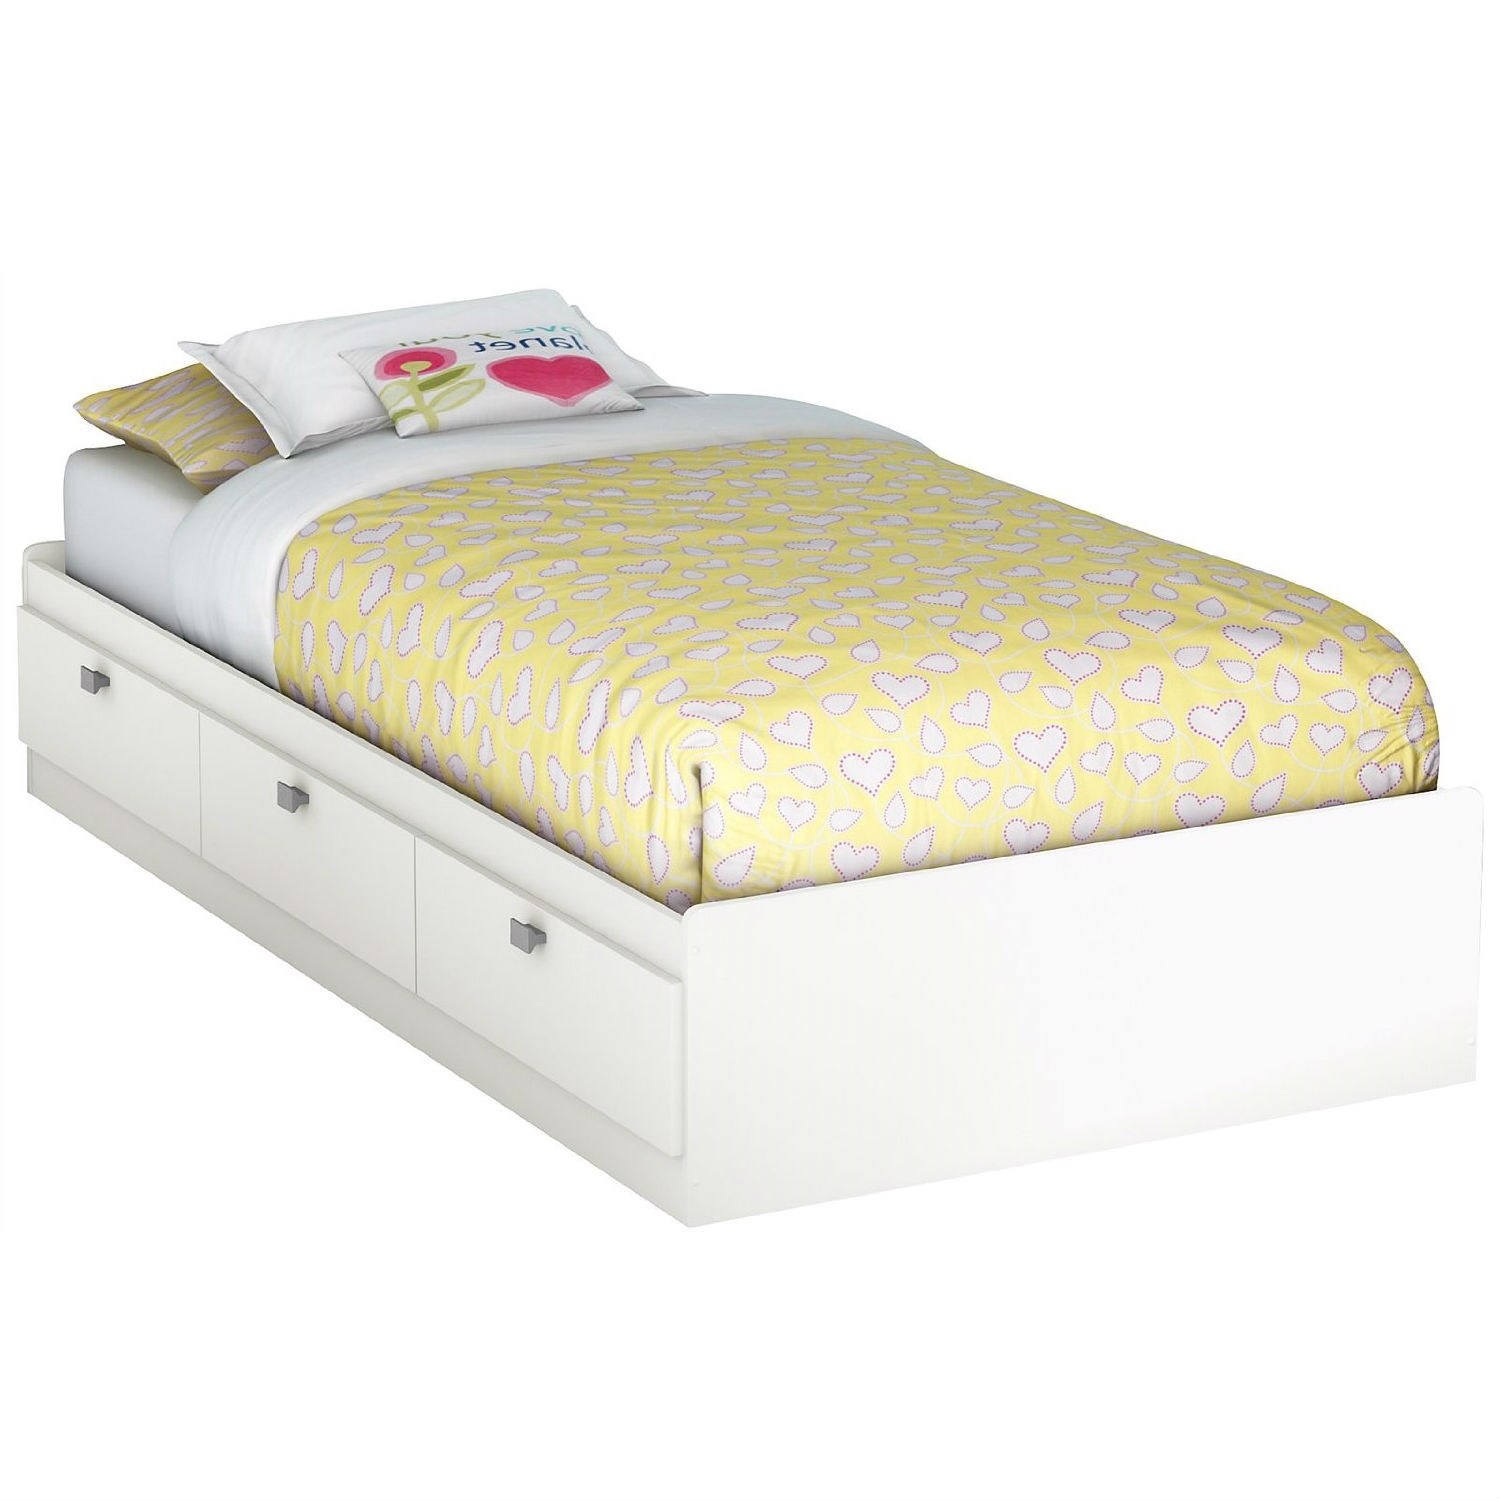 Picture of: Twin Size White Platform Bed For Kids Teens Adults With 3 Storage Drawers Fastfurnishings Com